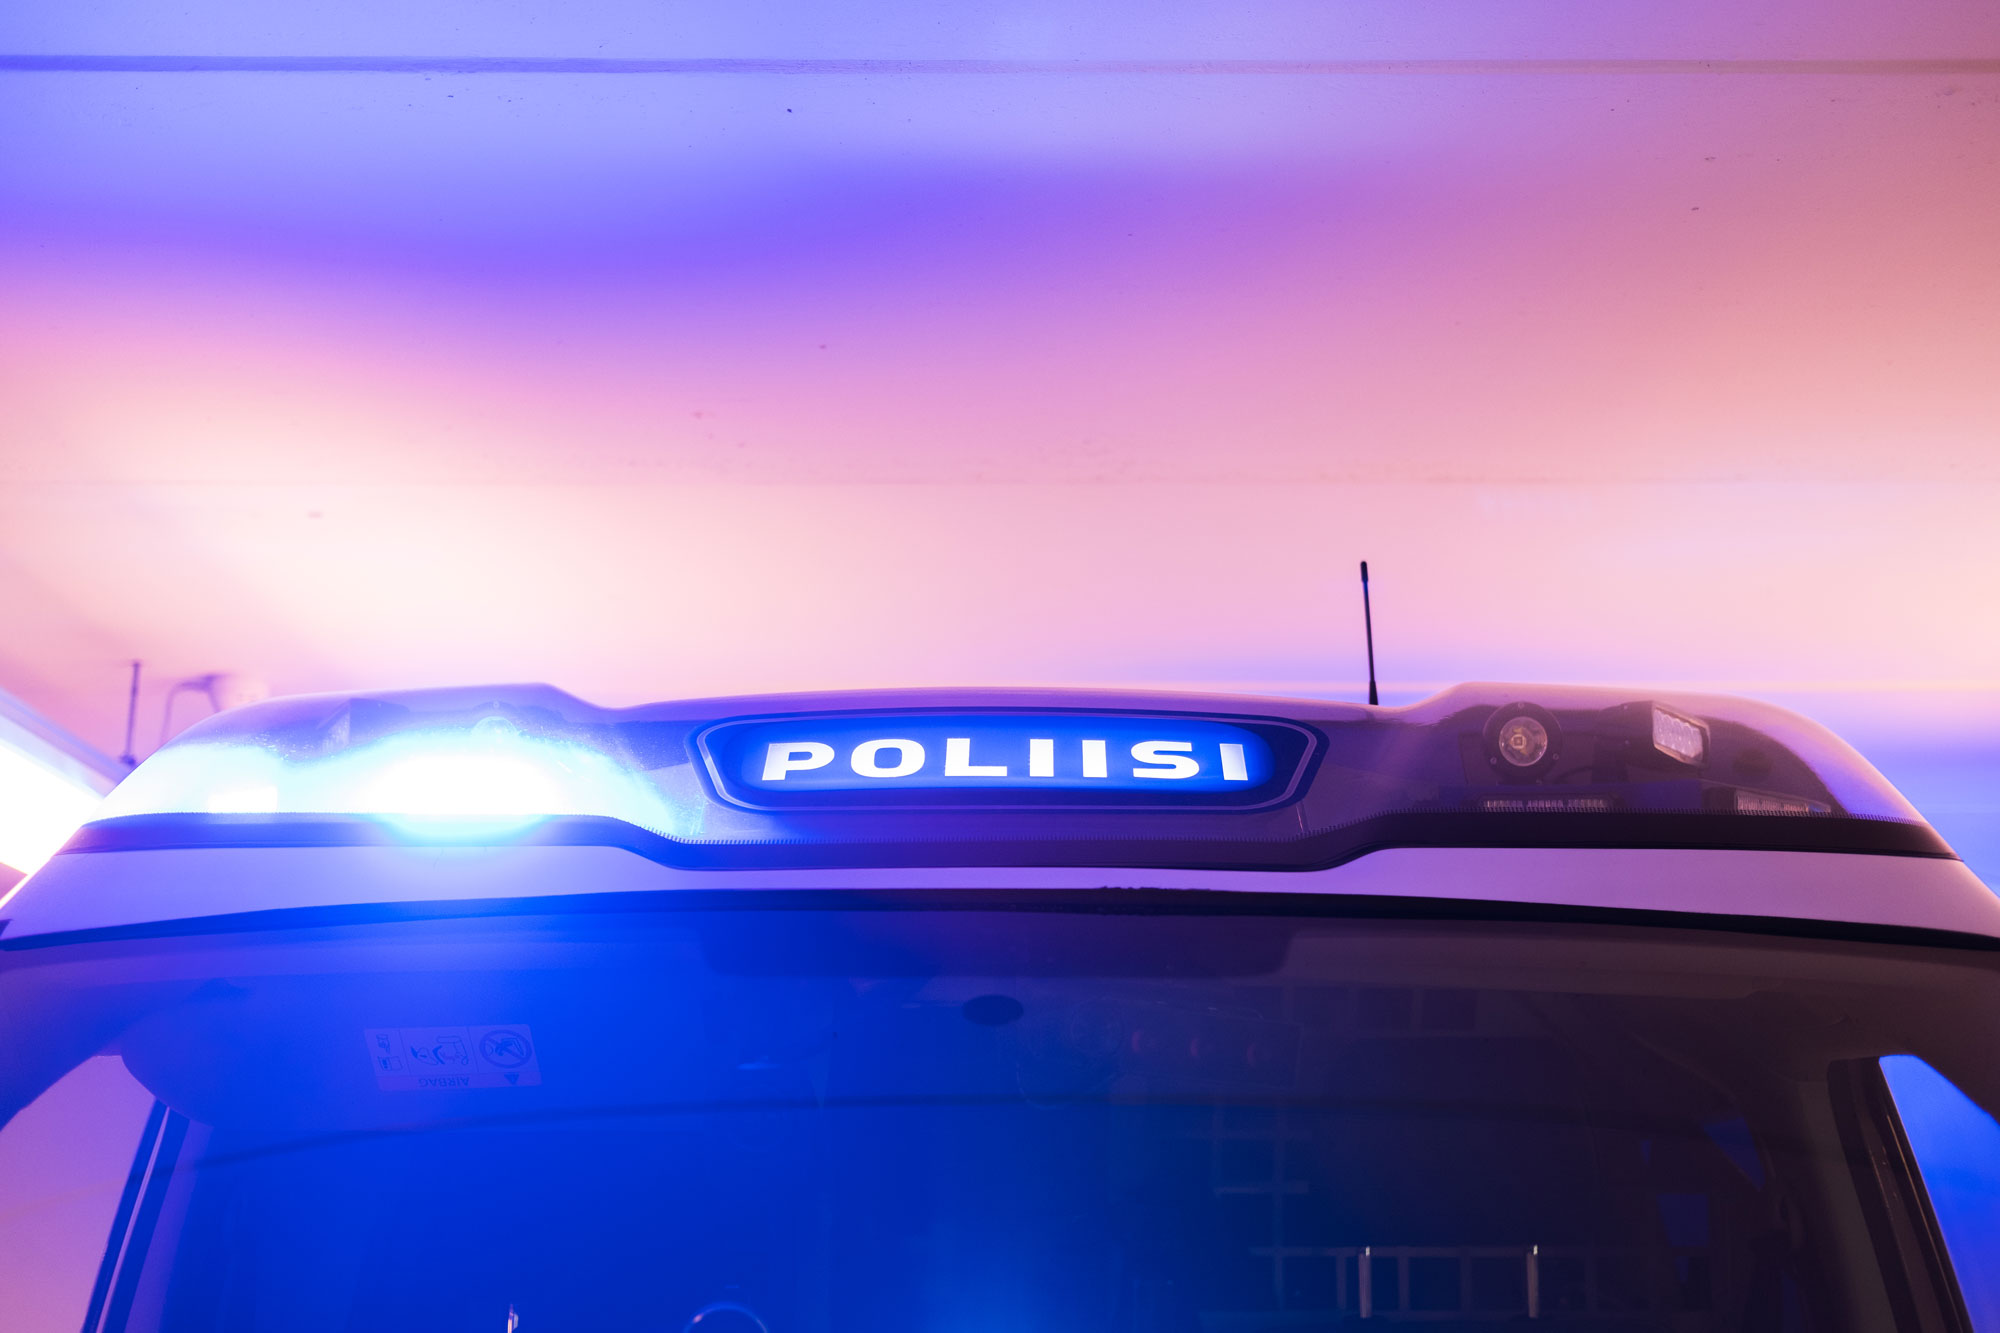 The light bar of a police car with the blue light pictured against the sky.